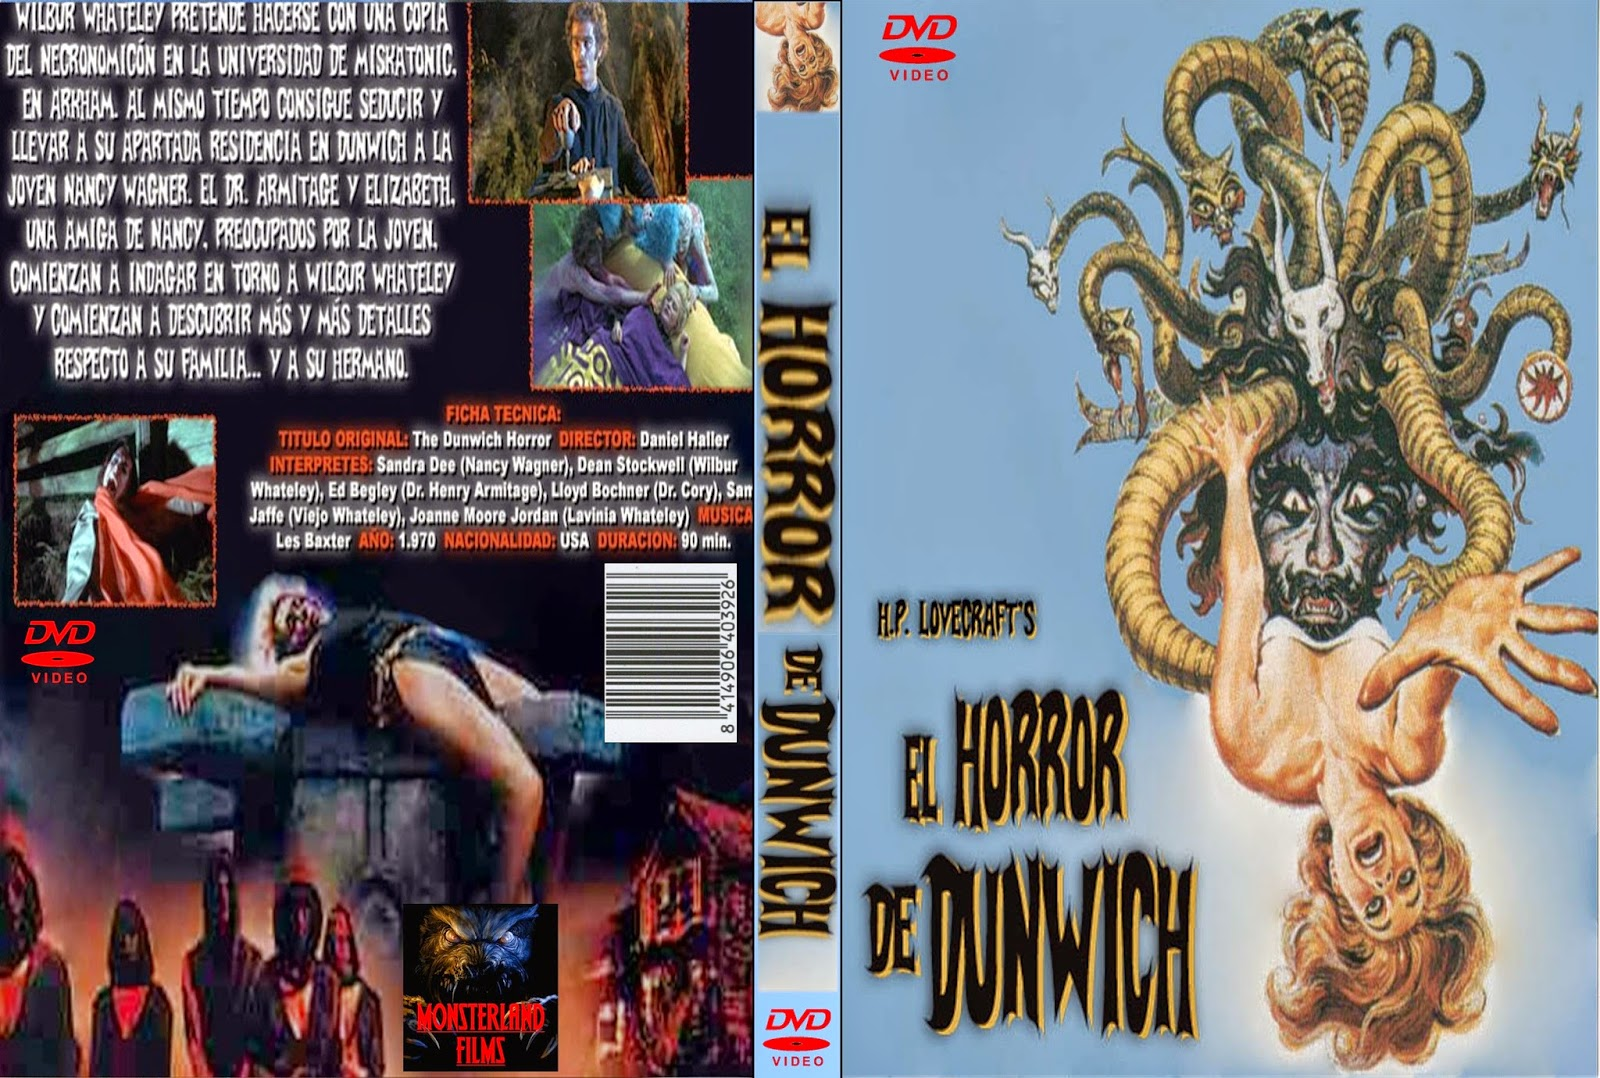 Terror en Dunwich (The Dunwich Horror, 1970)